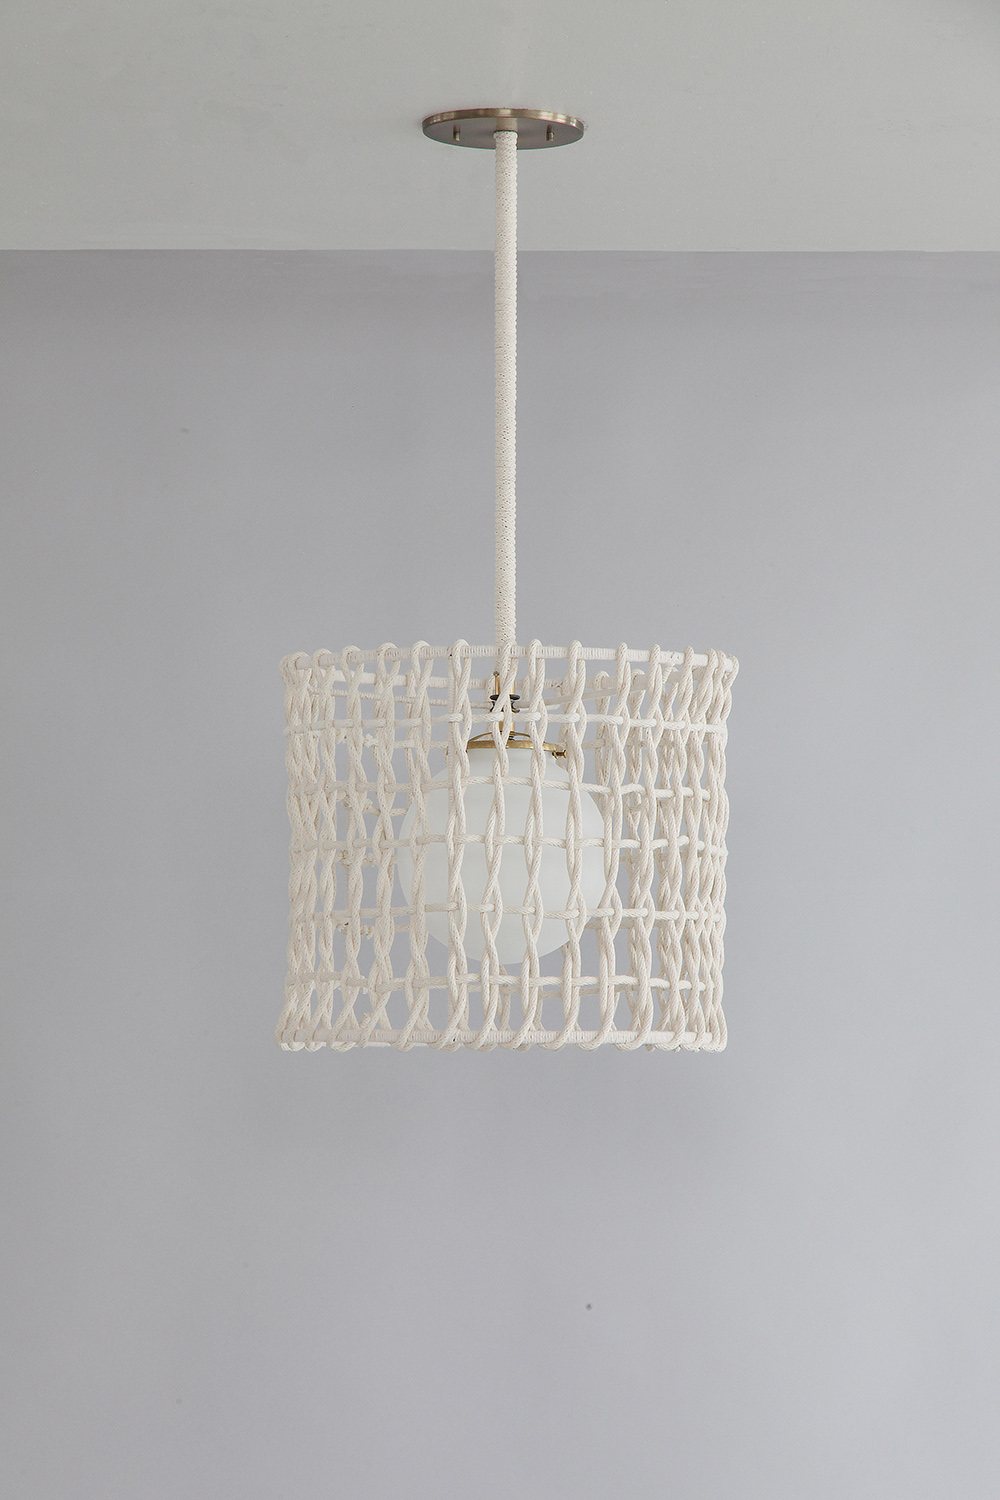 Rope_C-123_Woven Rope Drum Pendant_Satin Brass_White_off.jpg